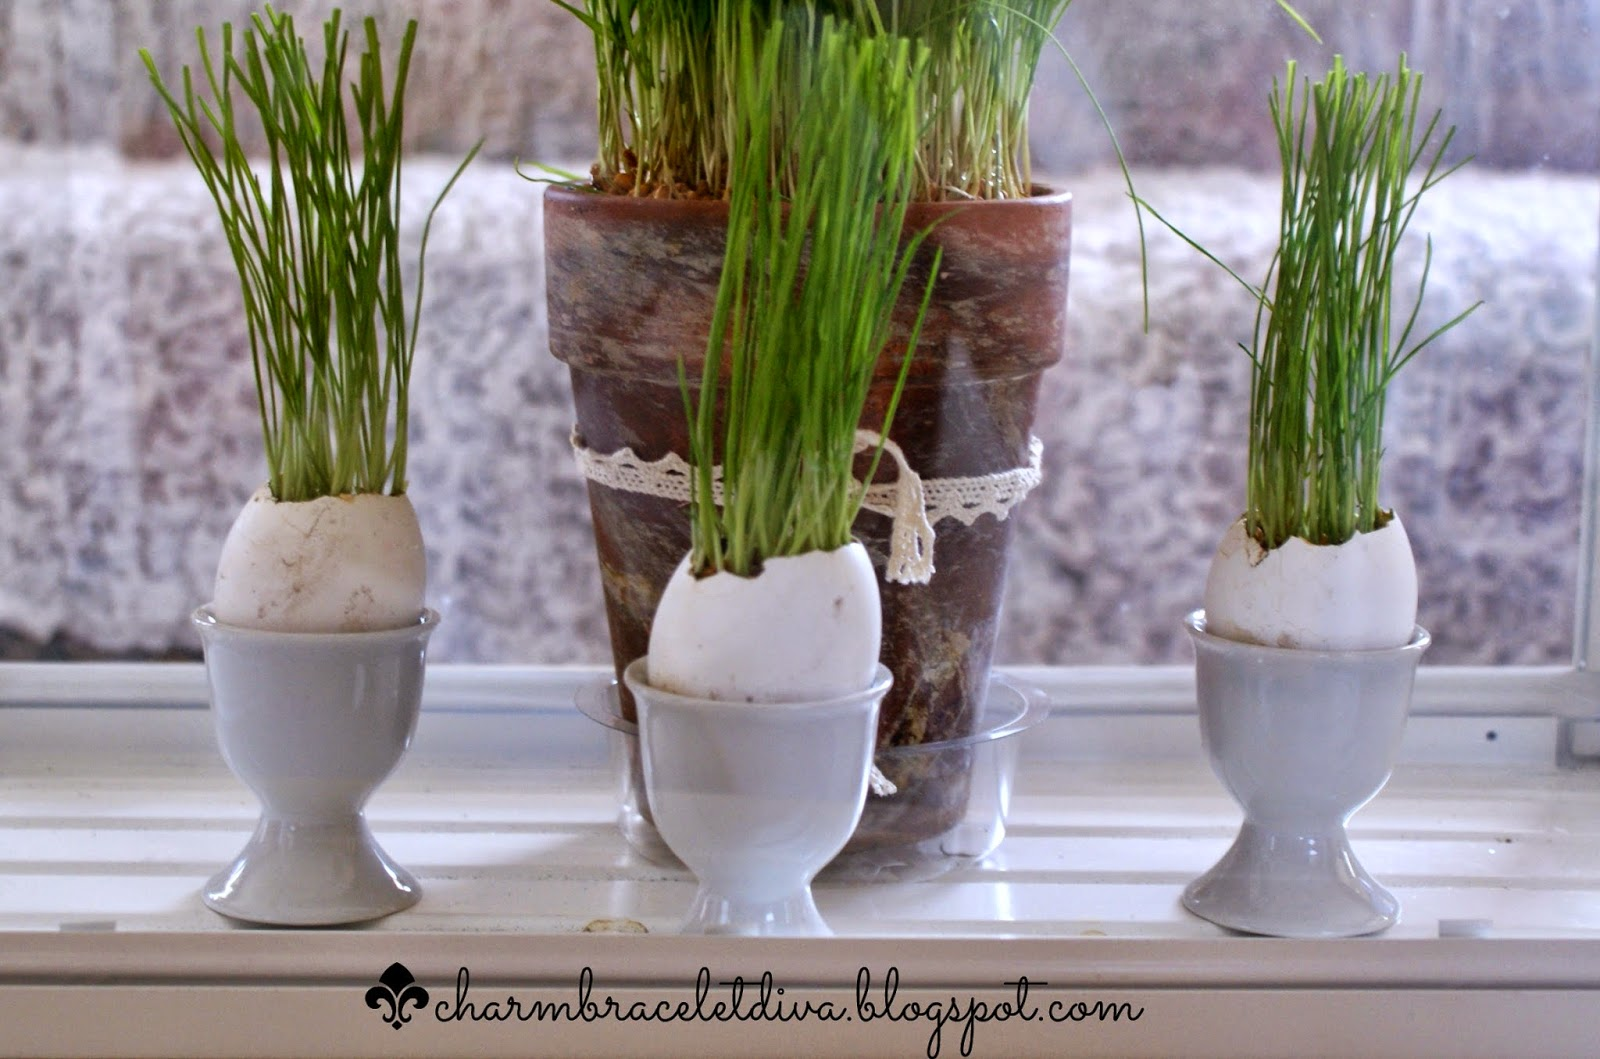 wheat grass growing in egg shells in Ikea terrarium